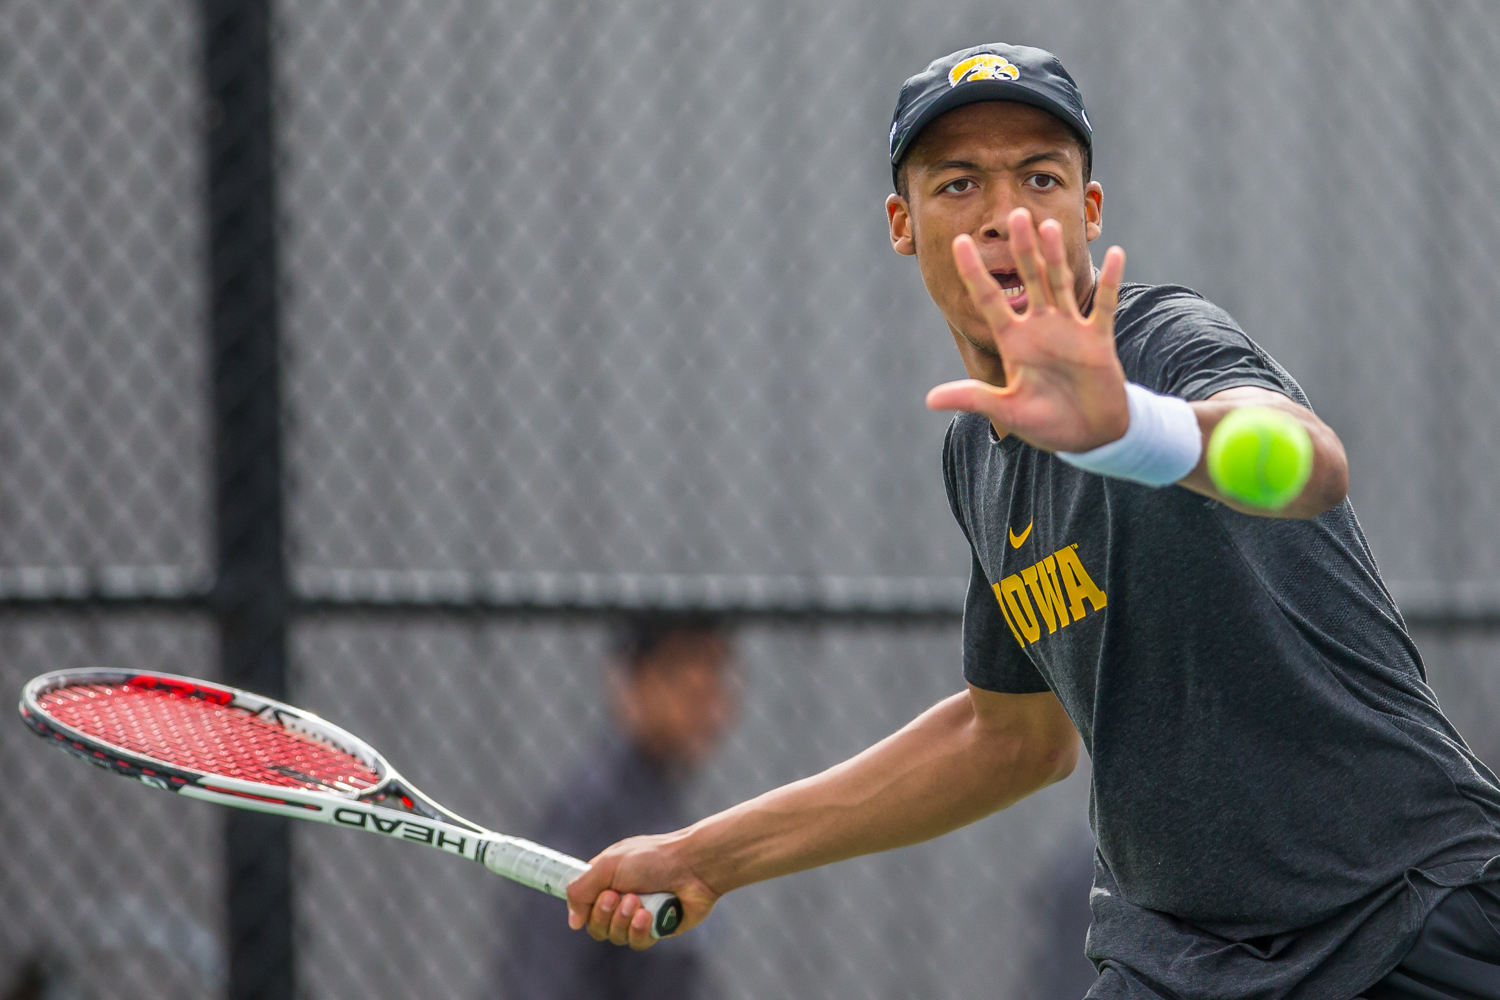 Iowa's Oliver Okonkwo hits a forehand during a men's tennis match between Iowa and Ohio State at the HTRC on Sunday, April 7, 2019. The Buckeyes defeated the Hawkeyes, 4-1.